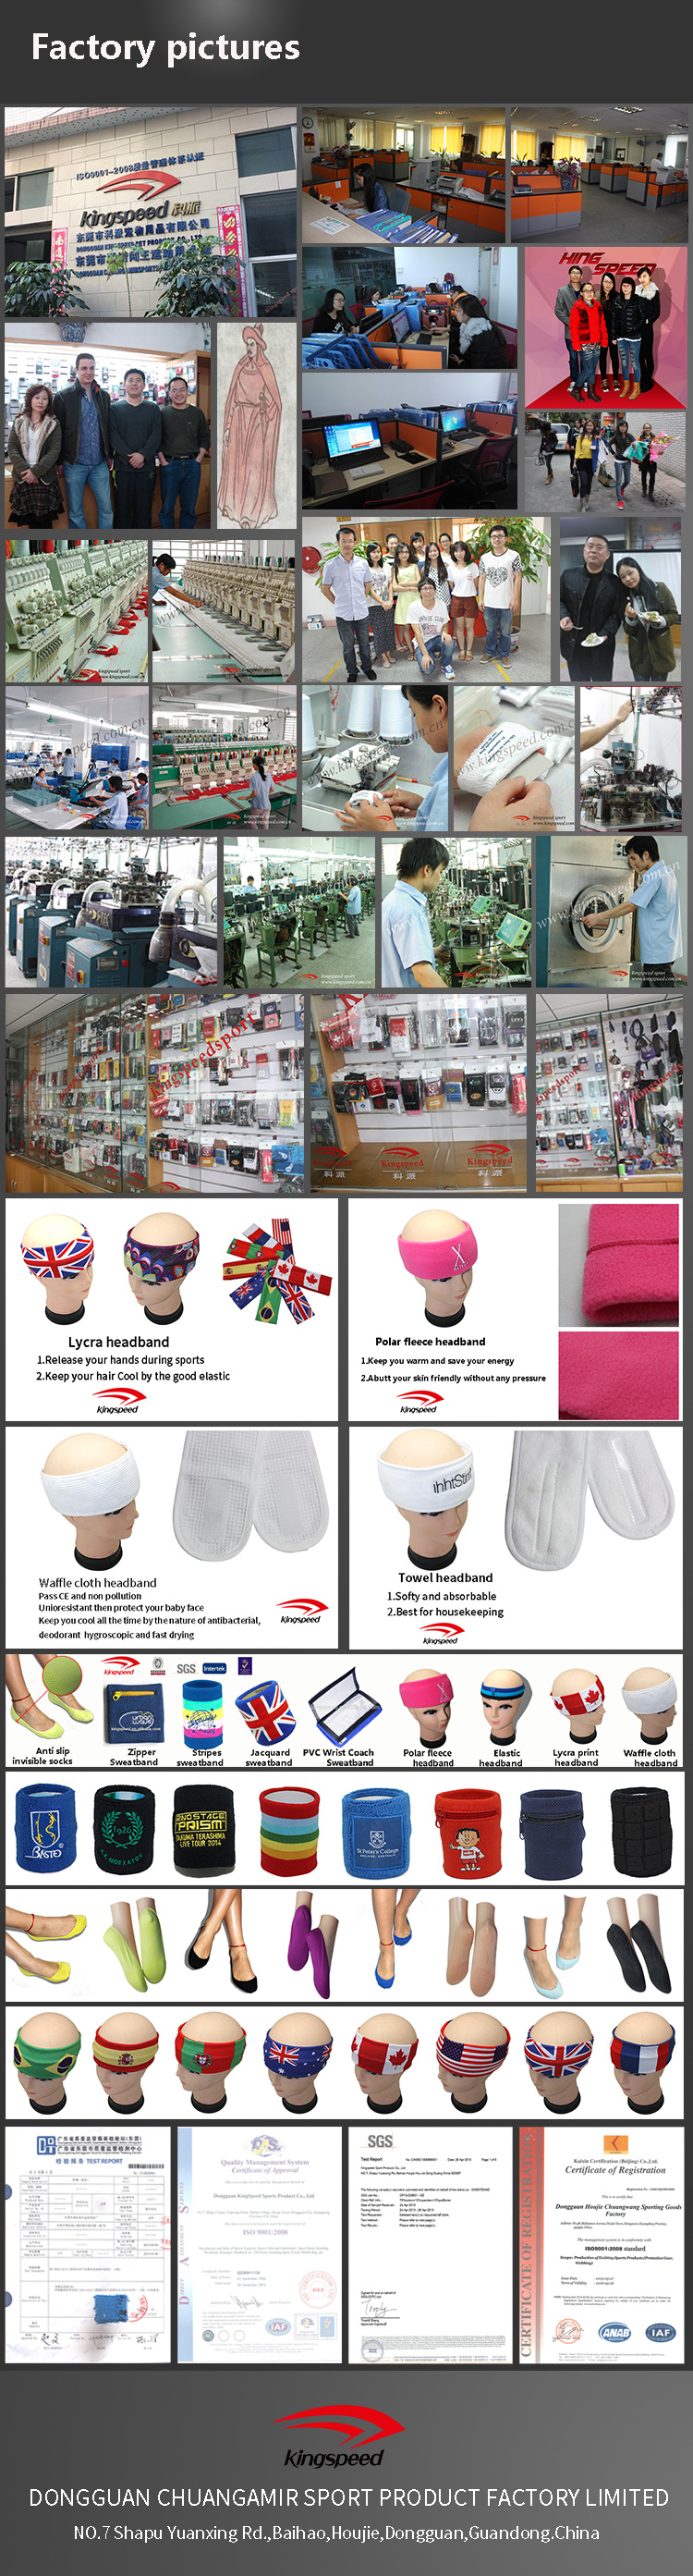 No Minimum Custom Wholesale Sweatband Black Terry Wristband Cotton Wrist  Support Free Samples Sweatbands for Embroidered